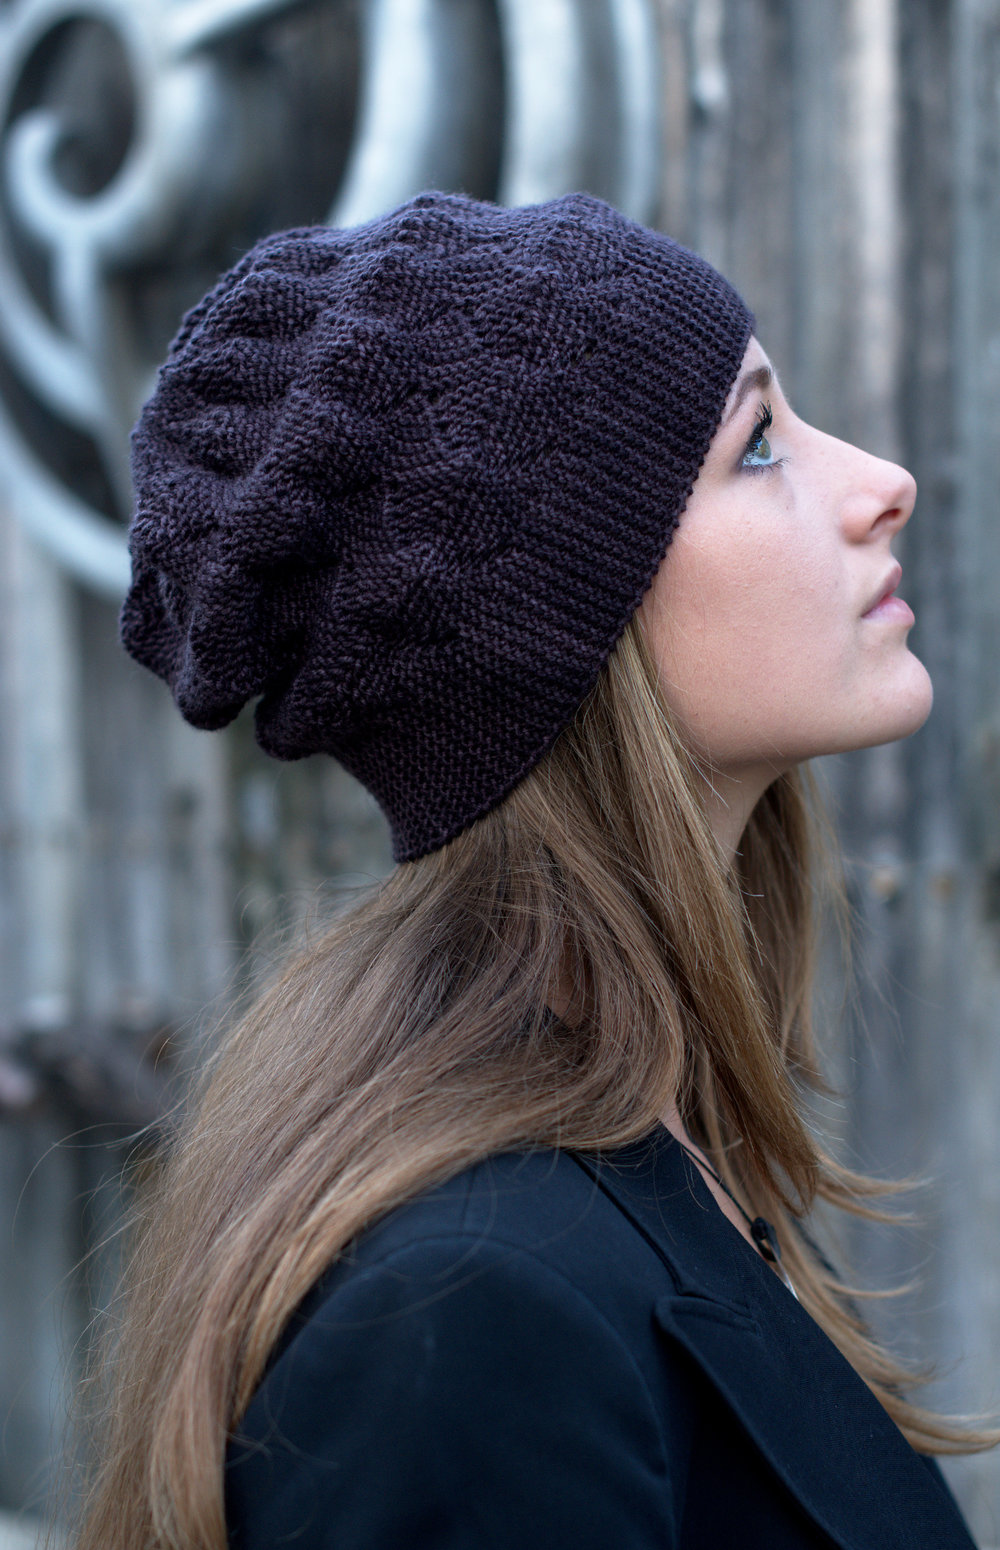 Sagitta sideways knit short row slouchy Hat knitting pattern